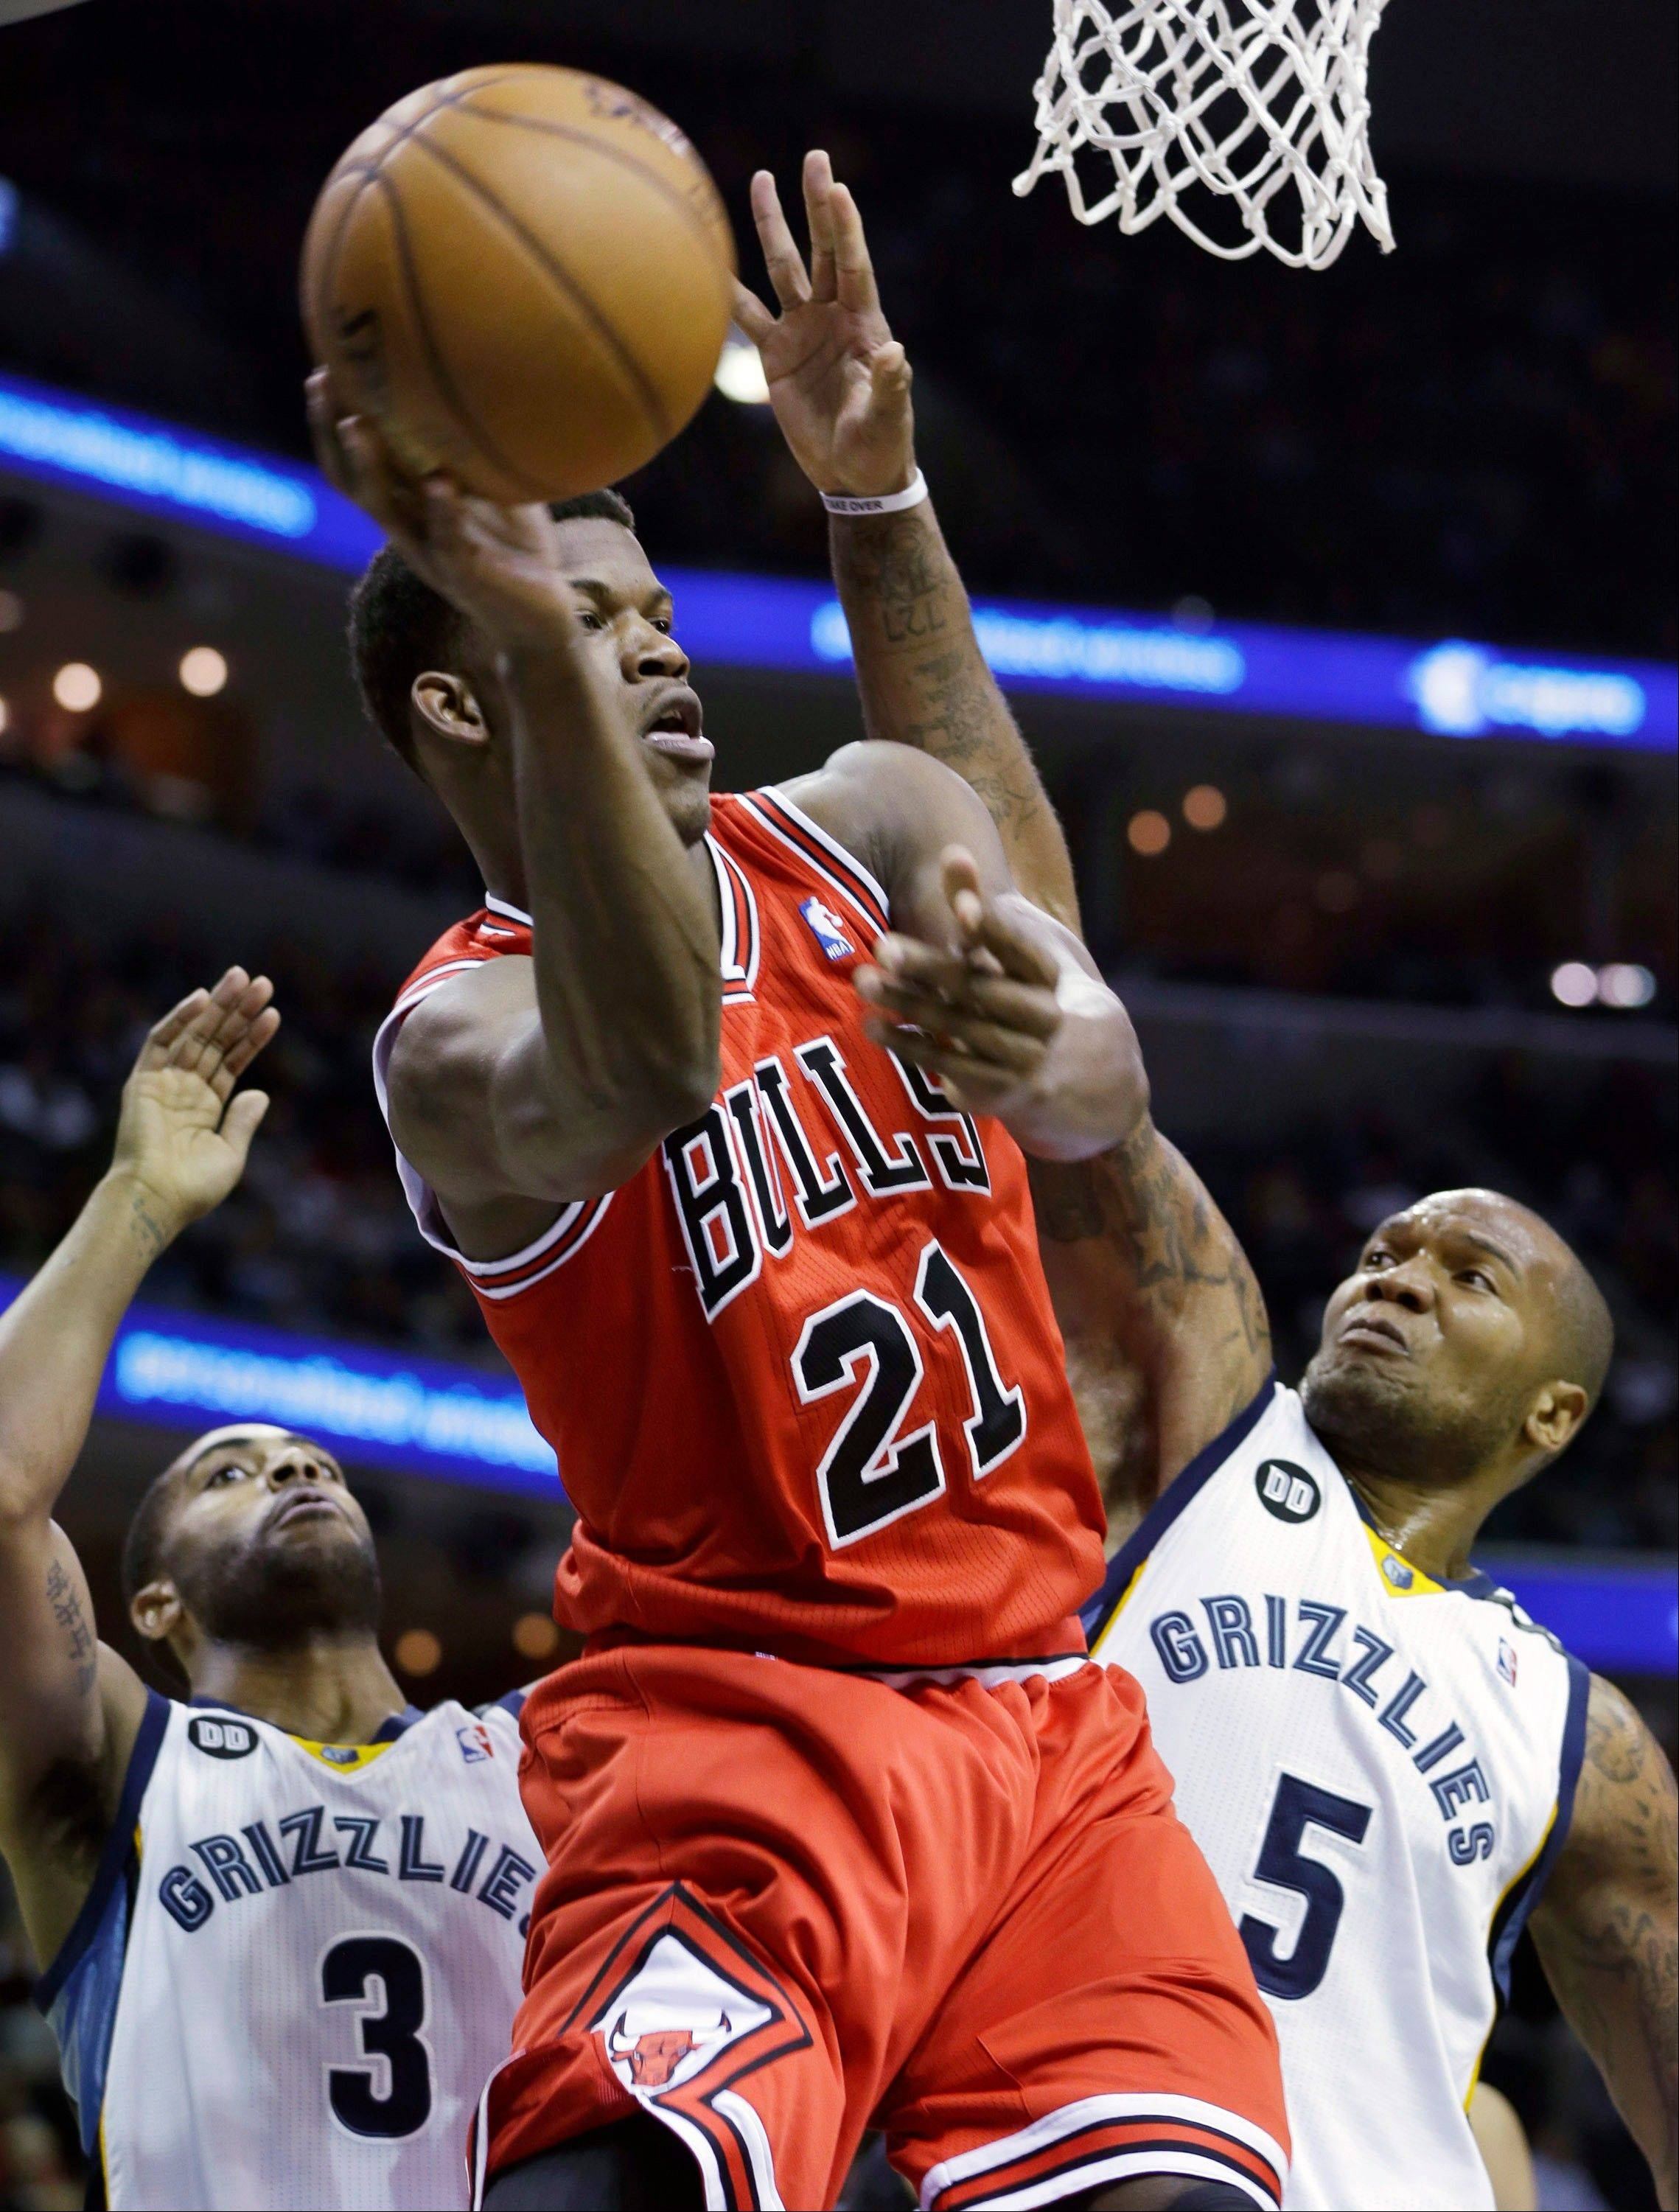 The Bulls� Jimmy Butler gets to an offensive rebound in front of the Grizzlies� Wayne Ellington (3) and Marreese Speights (5).